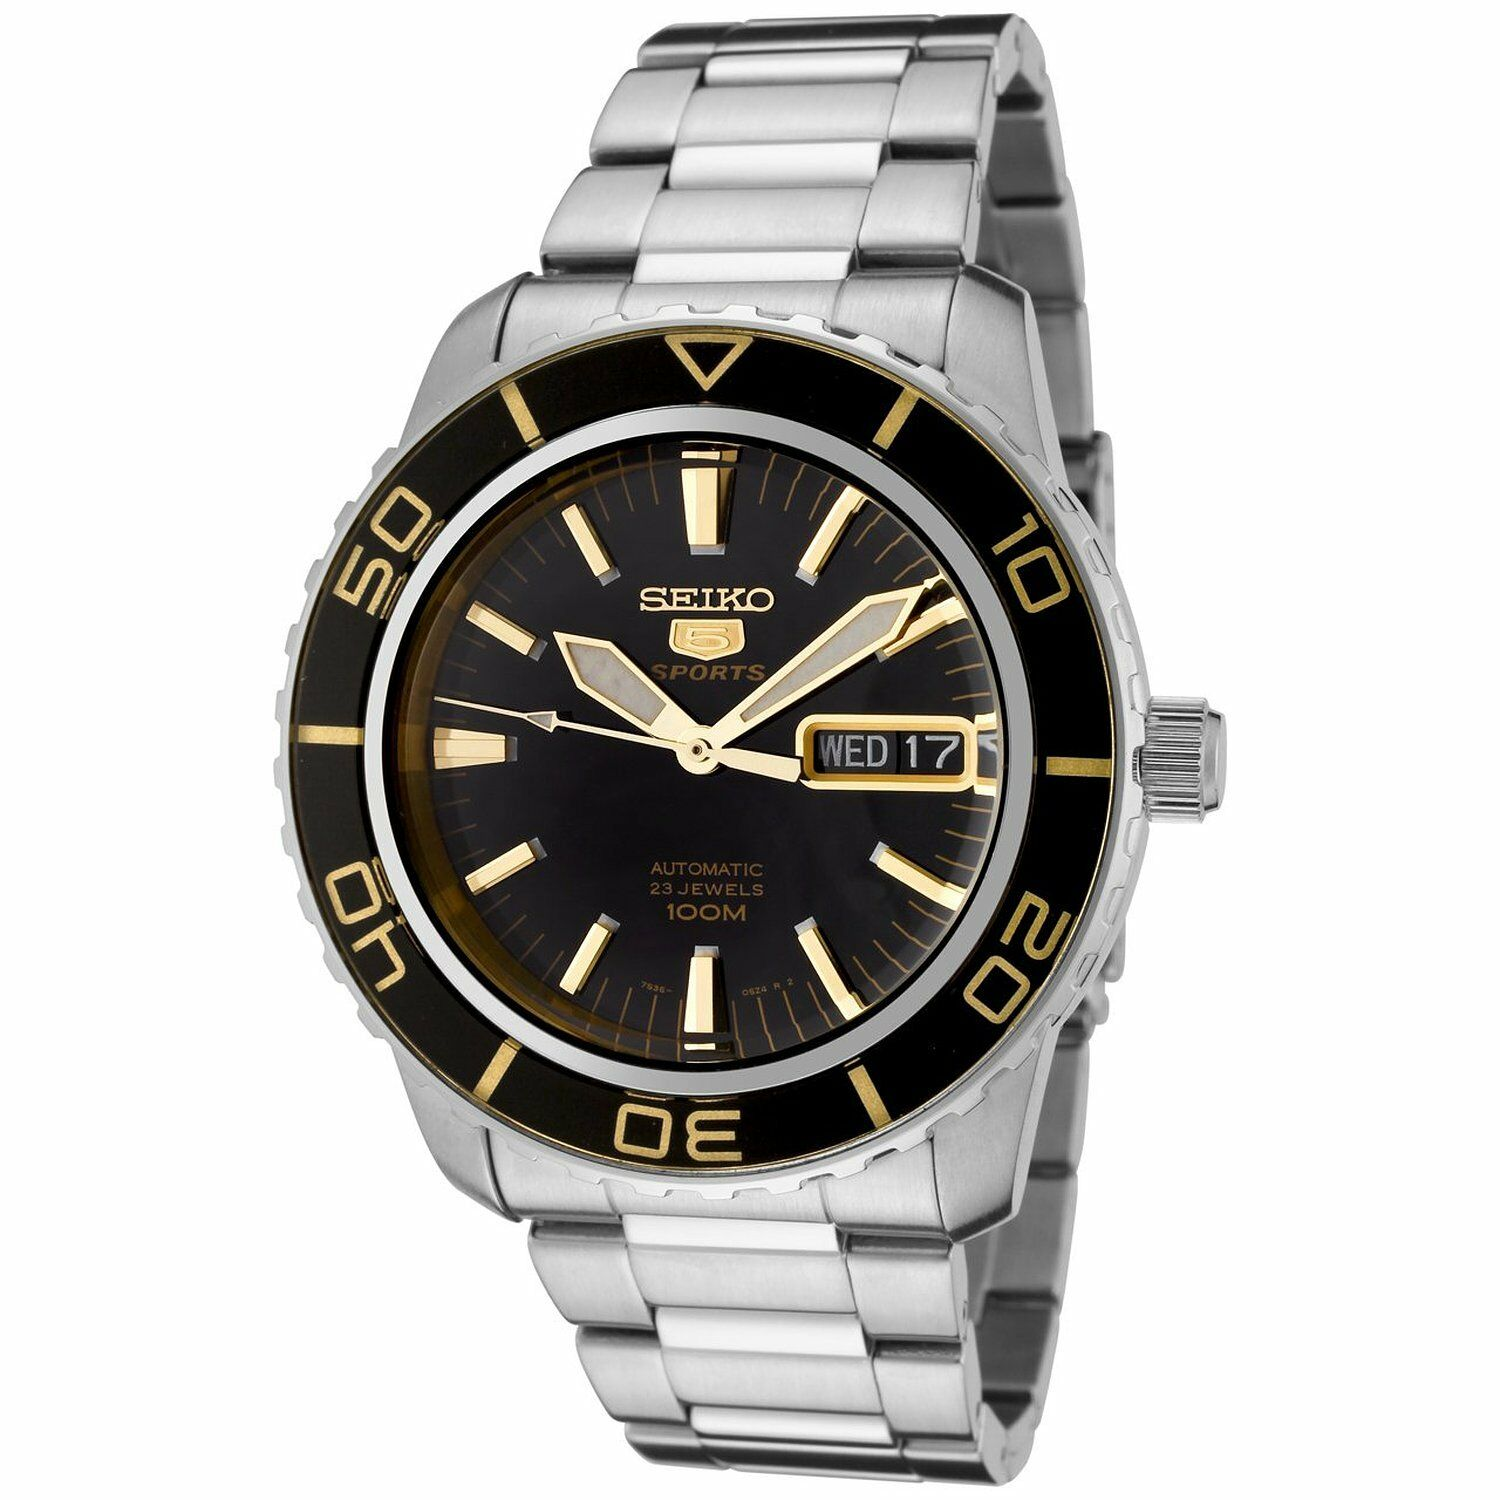 Mens SNZH57 Seiko 5 Automatic Stainless Steel Watch